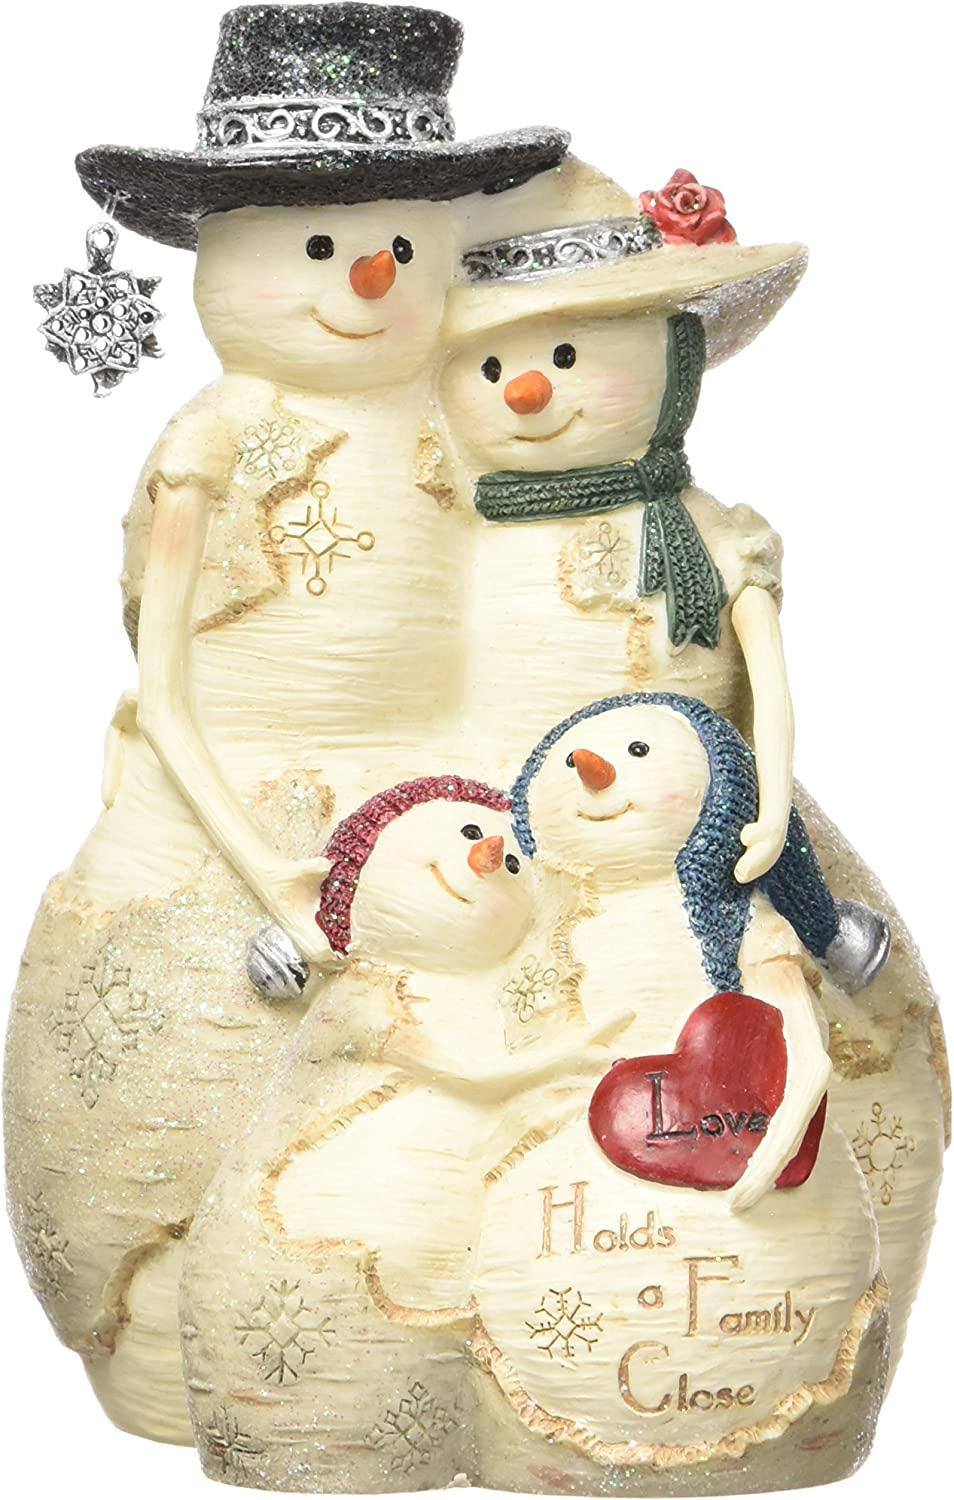 Pavilion Gift Company BirchHeart 5-Inch Max 40% OFF Family Tall Snowman Direct sale of manufacturer Rea